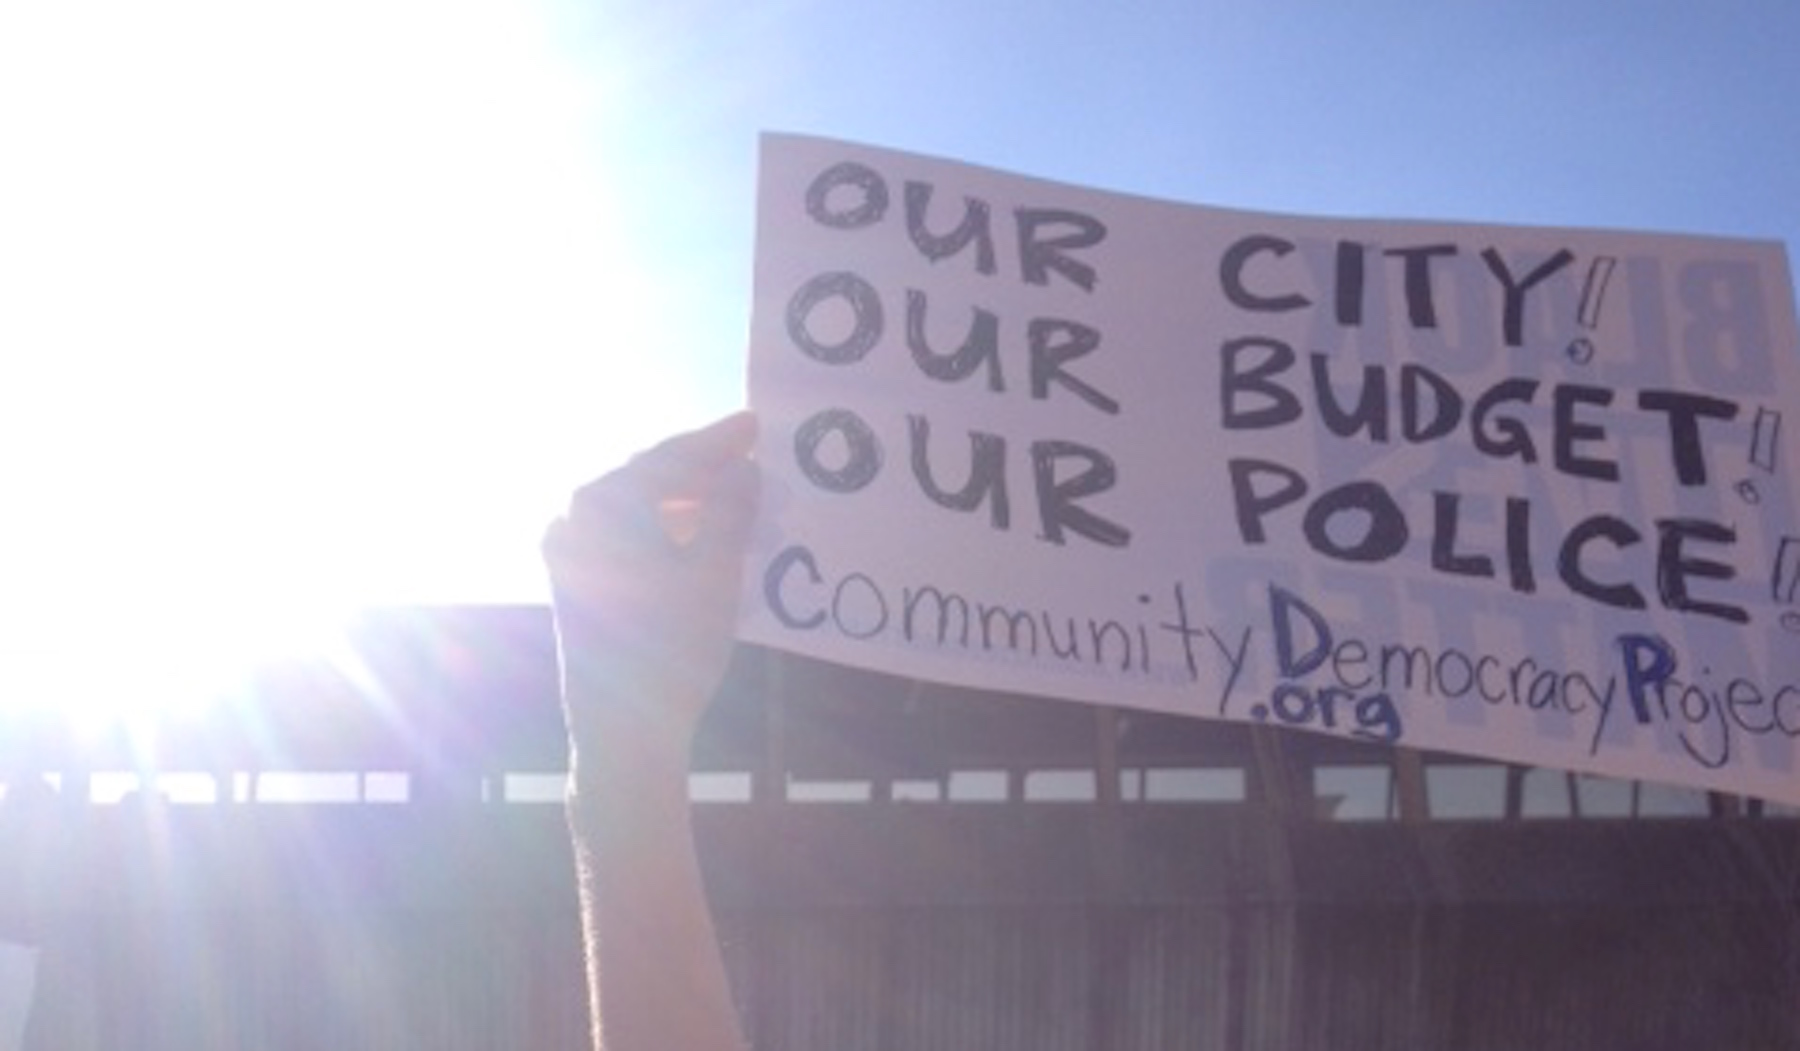 Community Democracy Project